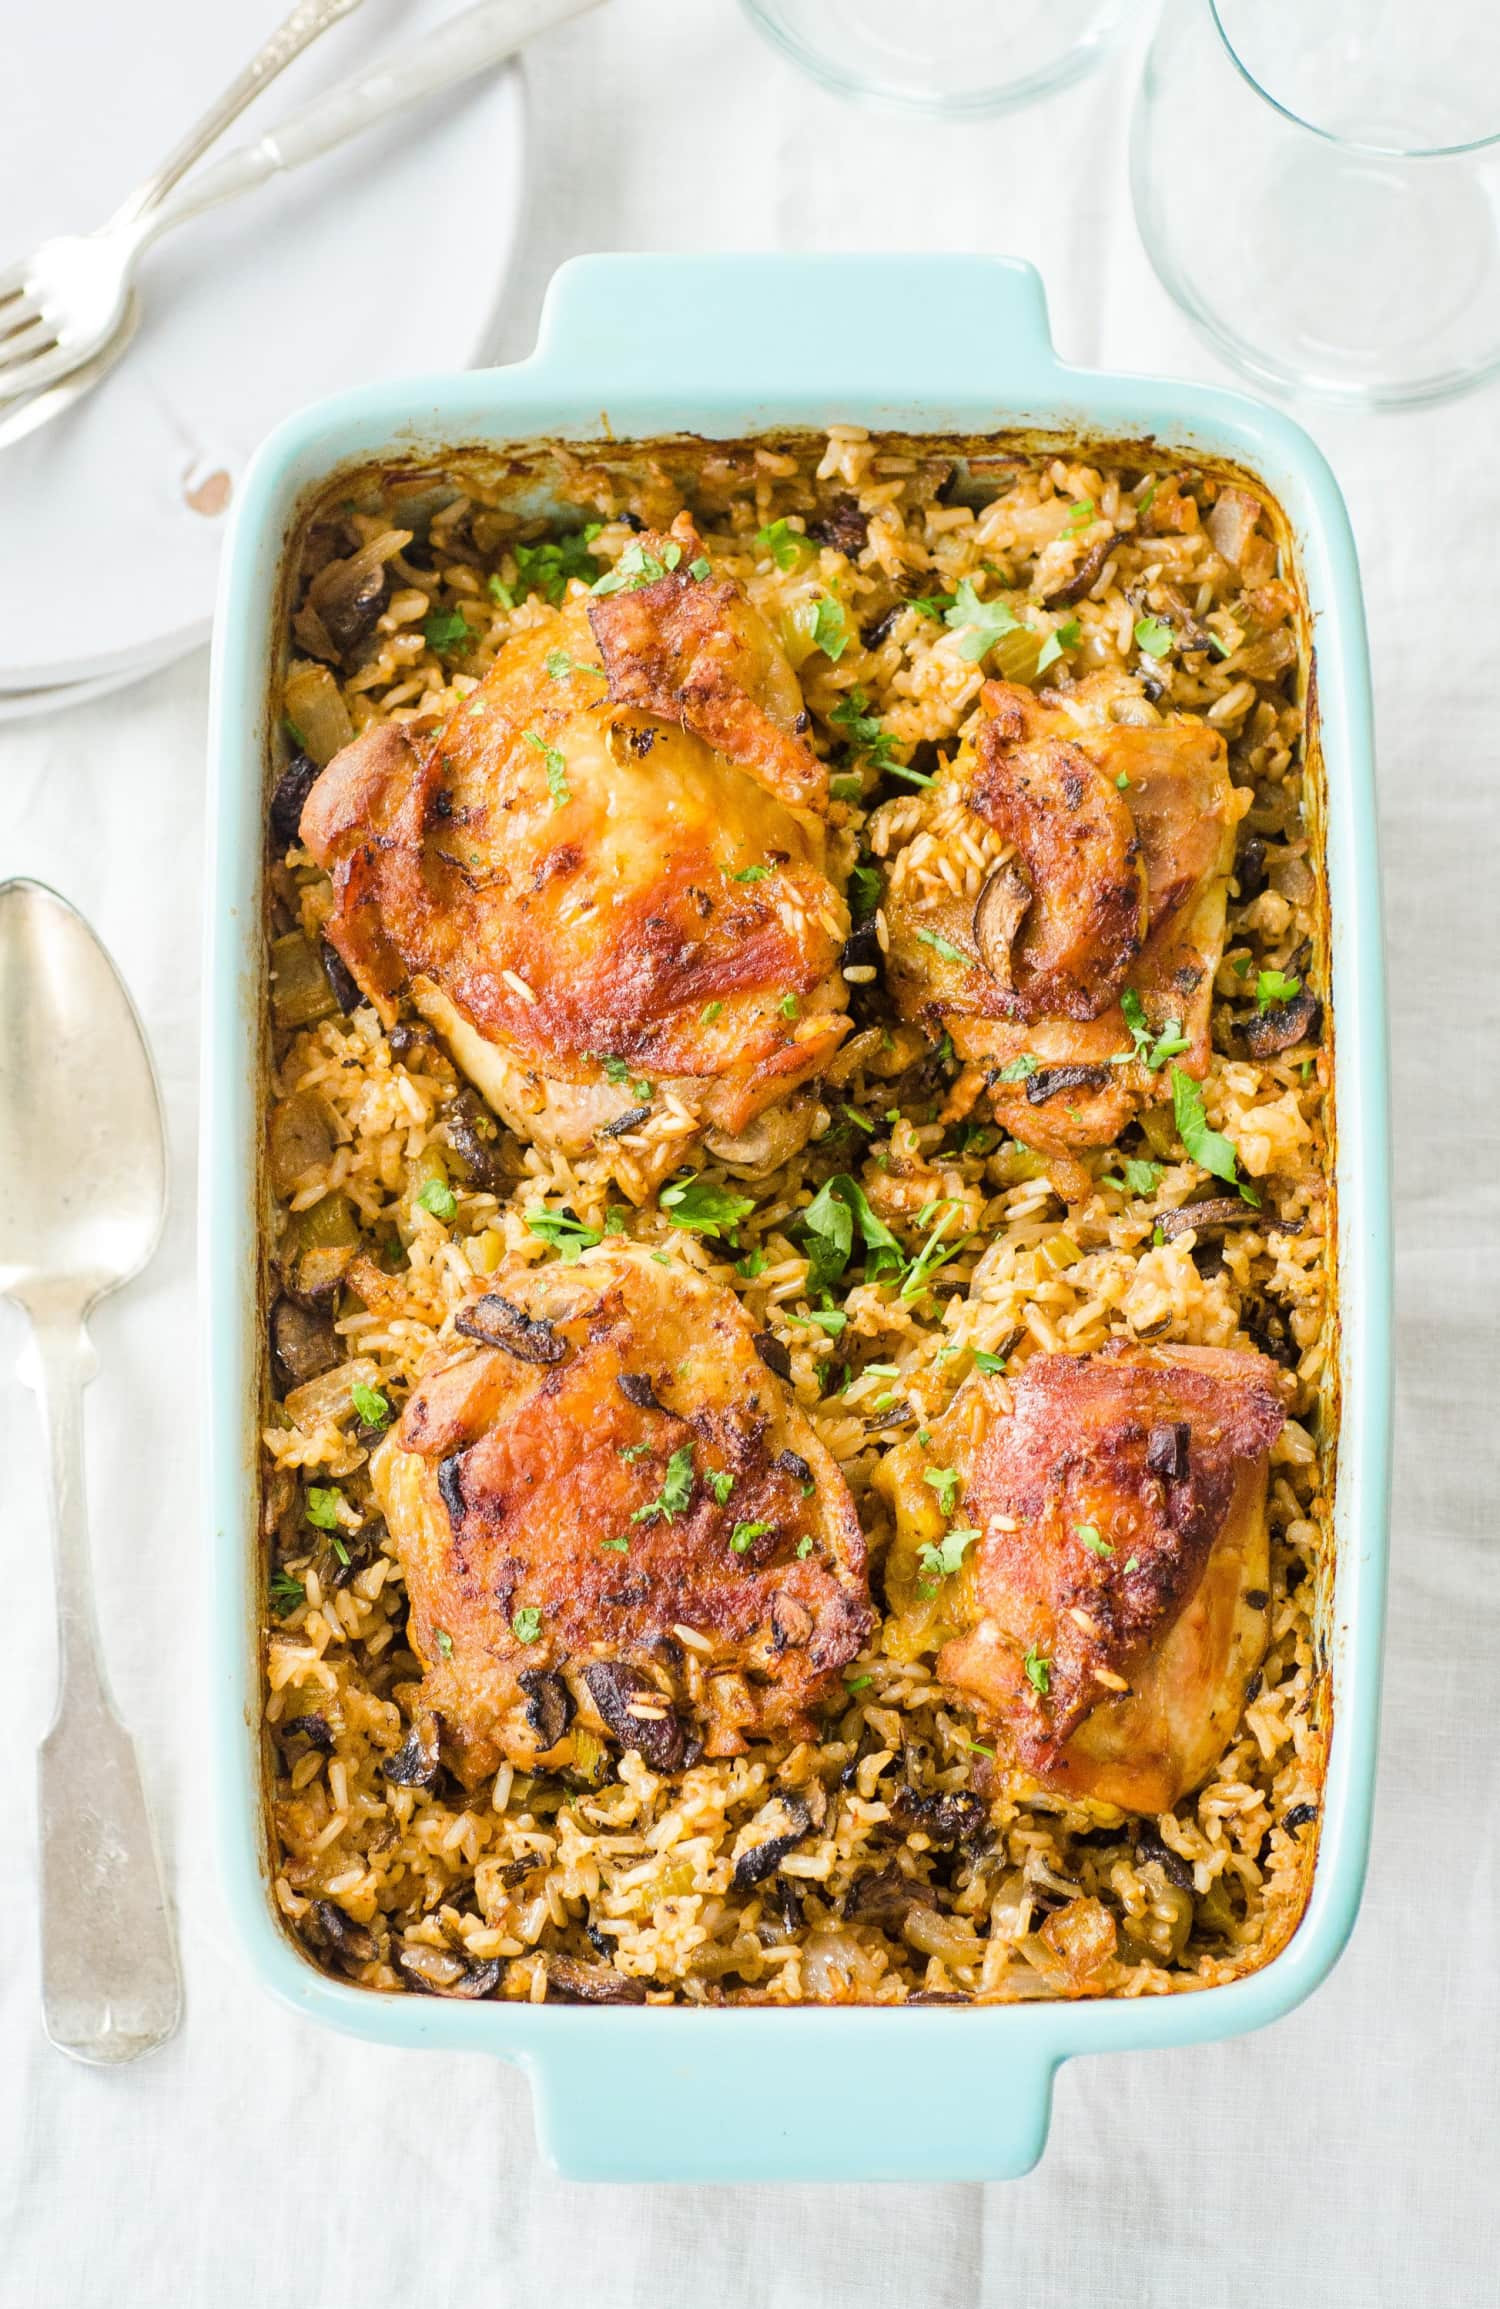 Baked Chicken And Rice Recipe  Recipe Chicken and Wild Rice Bake